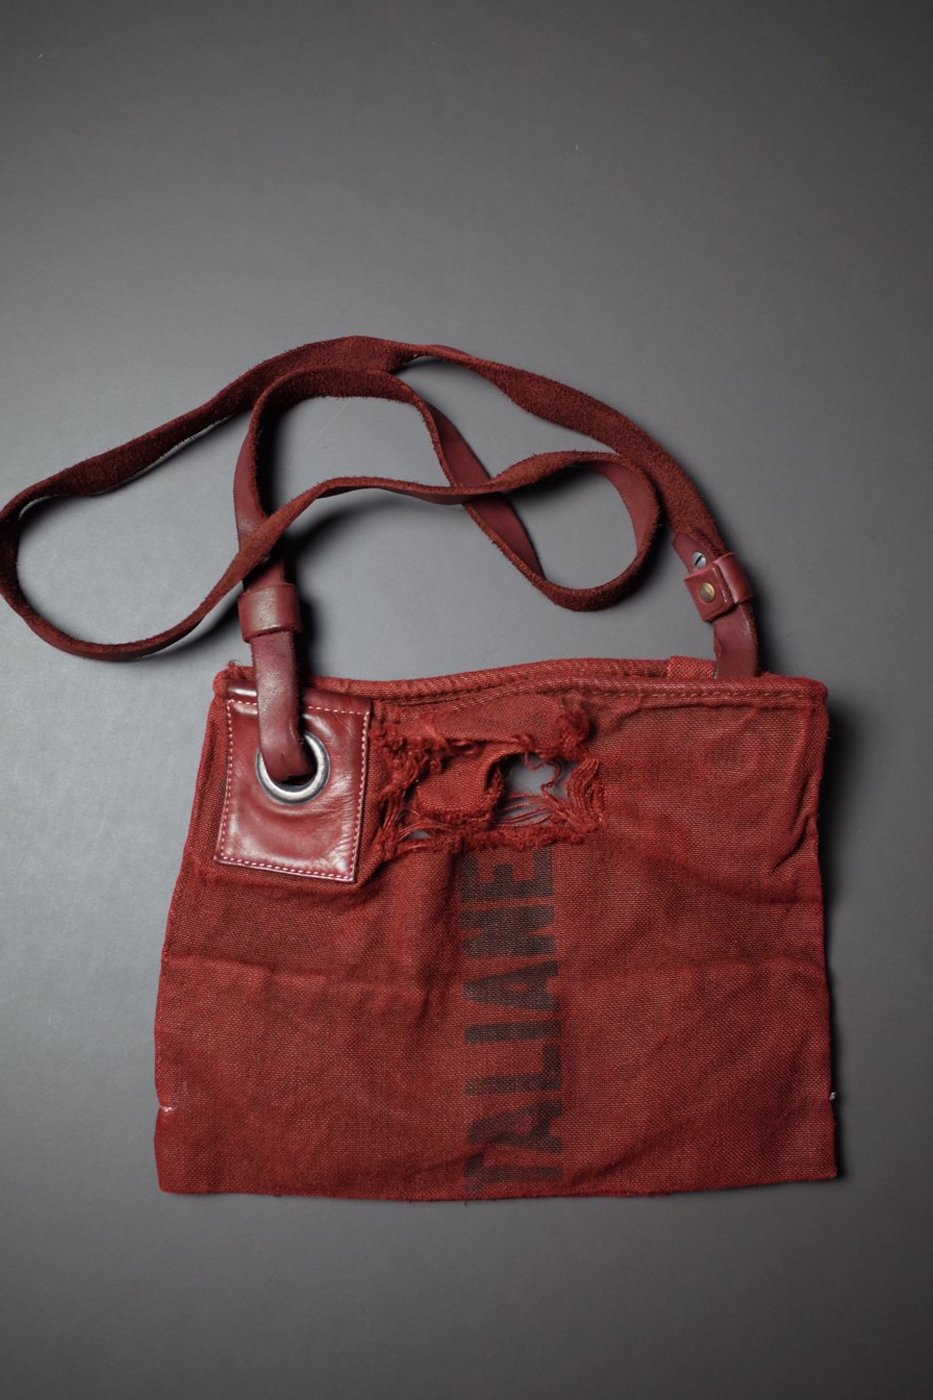 DELLE COSE デレコーゼ-SMALL SIZE SHOULDER BAG-RED-